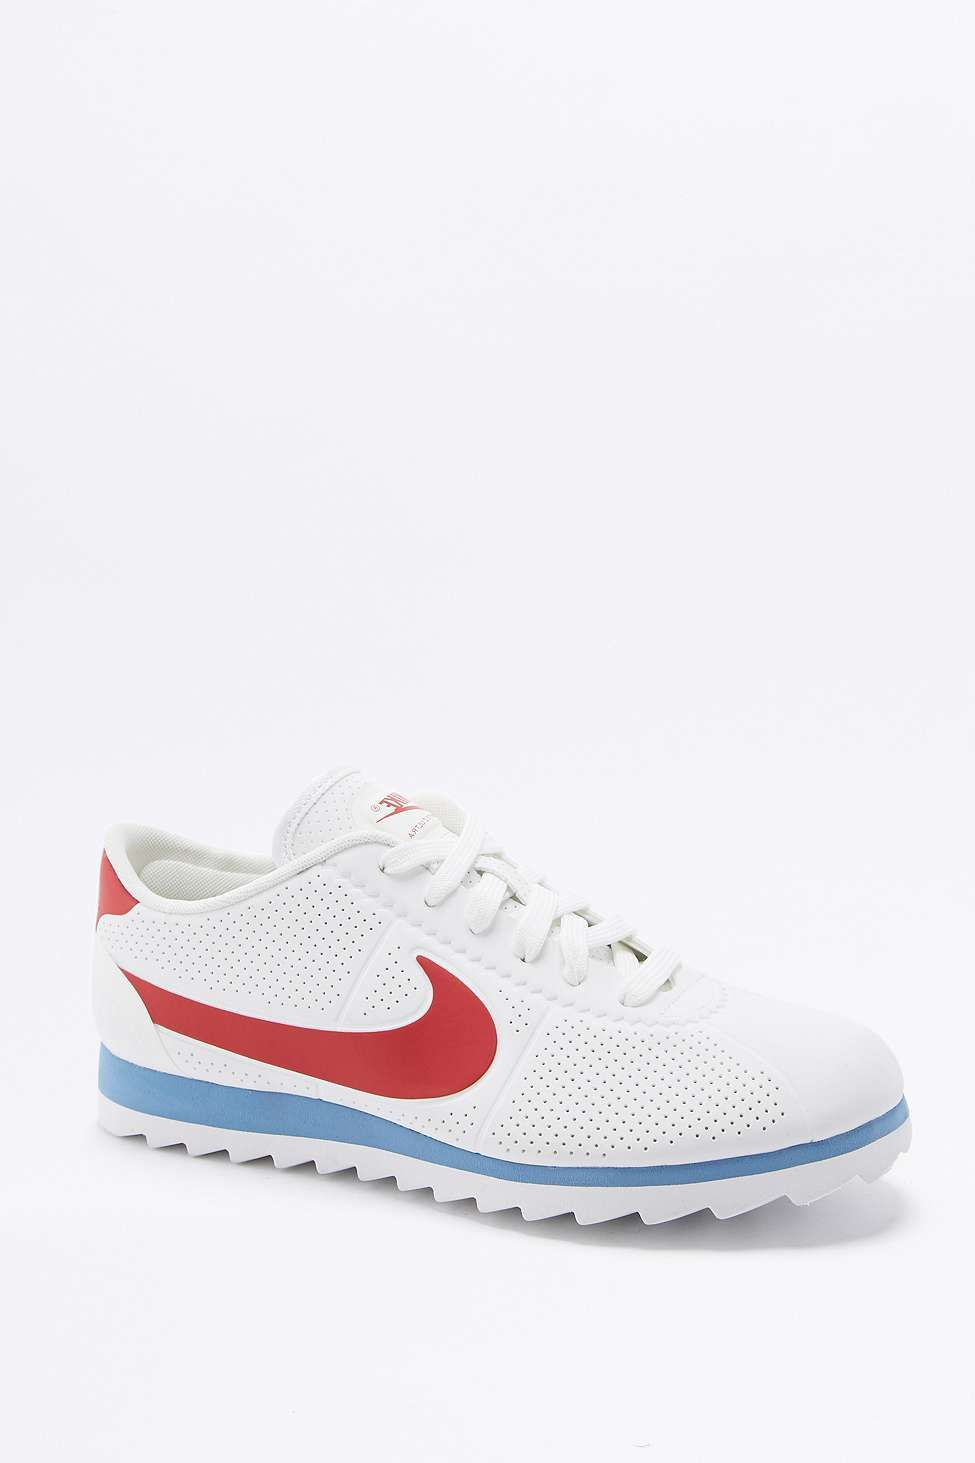 foam nike shoes new releases outfitters clothing 862415